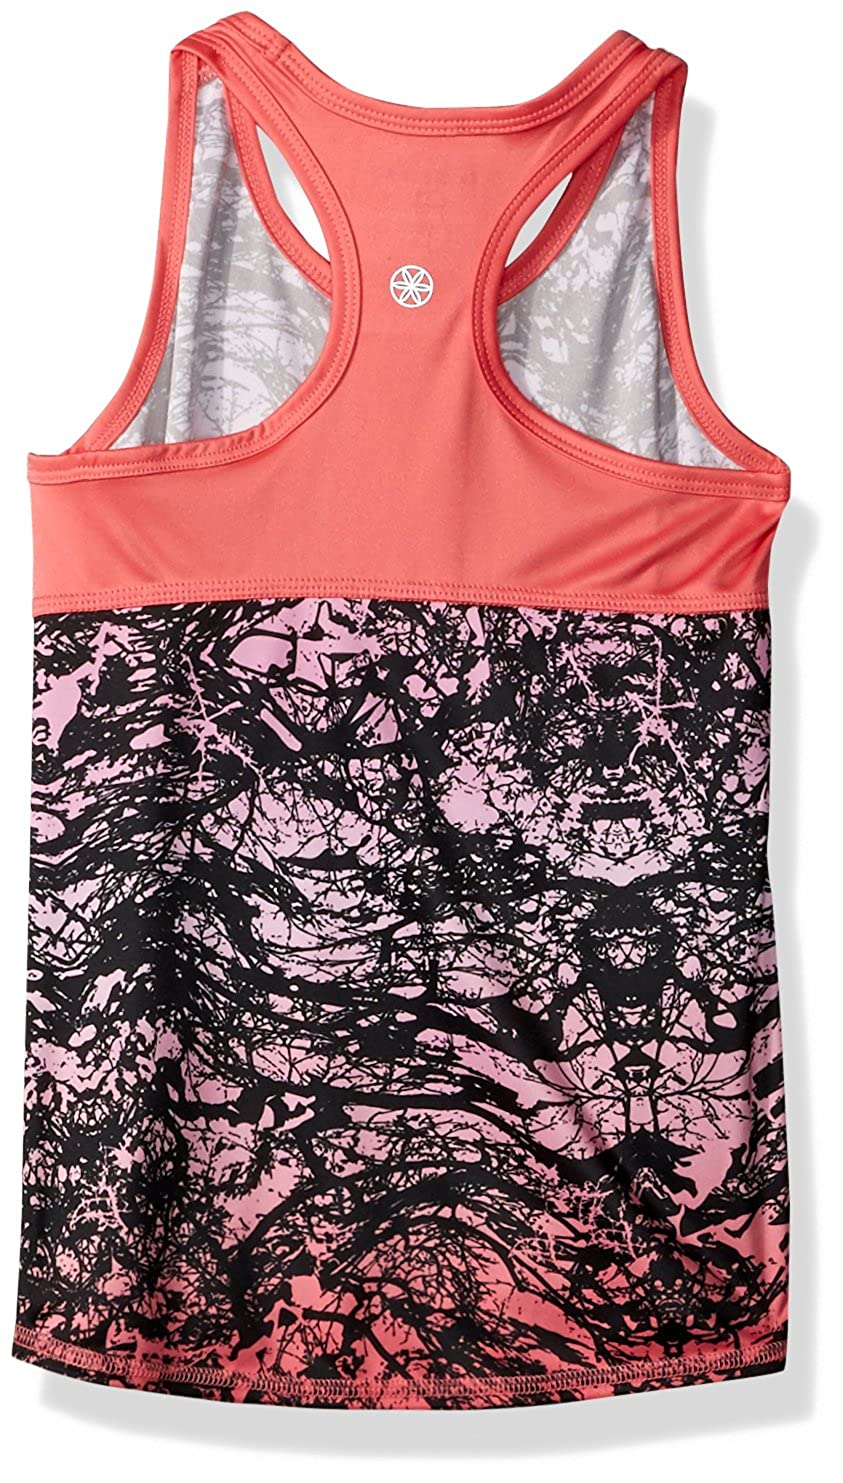 0123fad06c8e3 Gaiam Girls  Big Lotus Chibori Print Tank Top Y730838  1541591162 ...